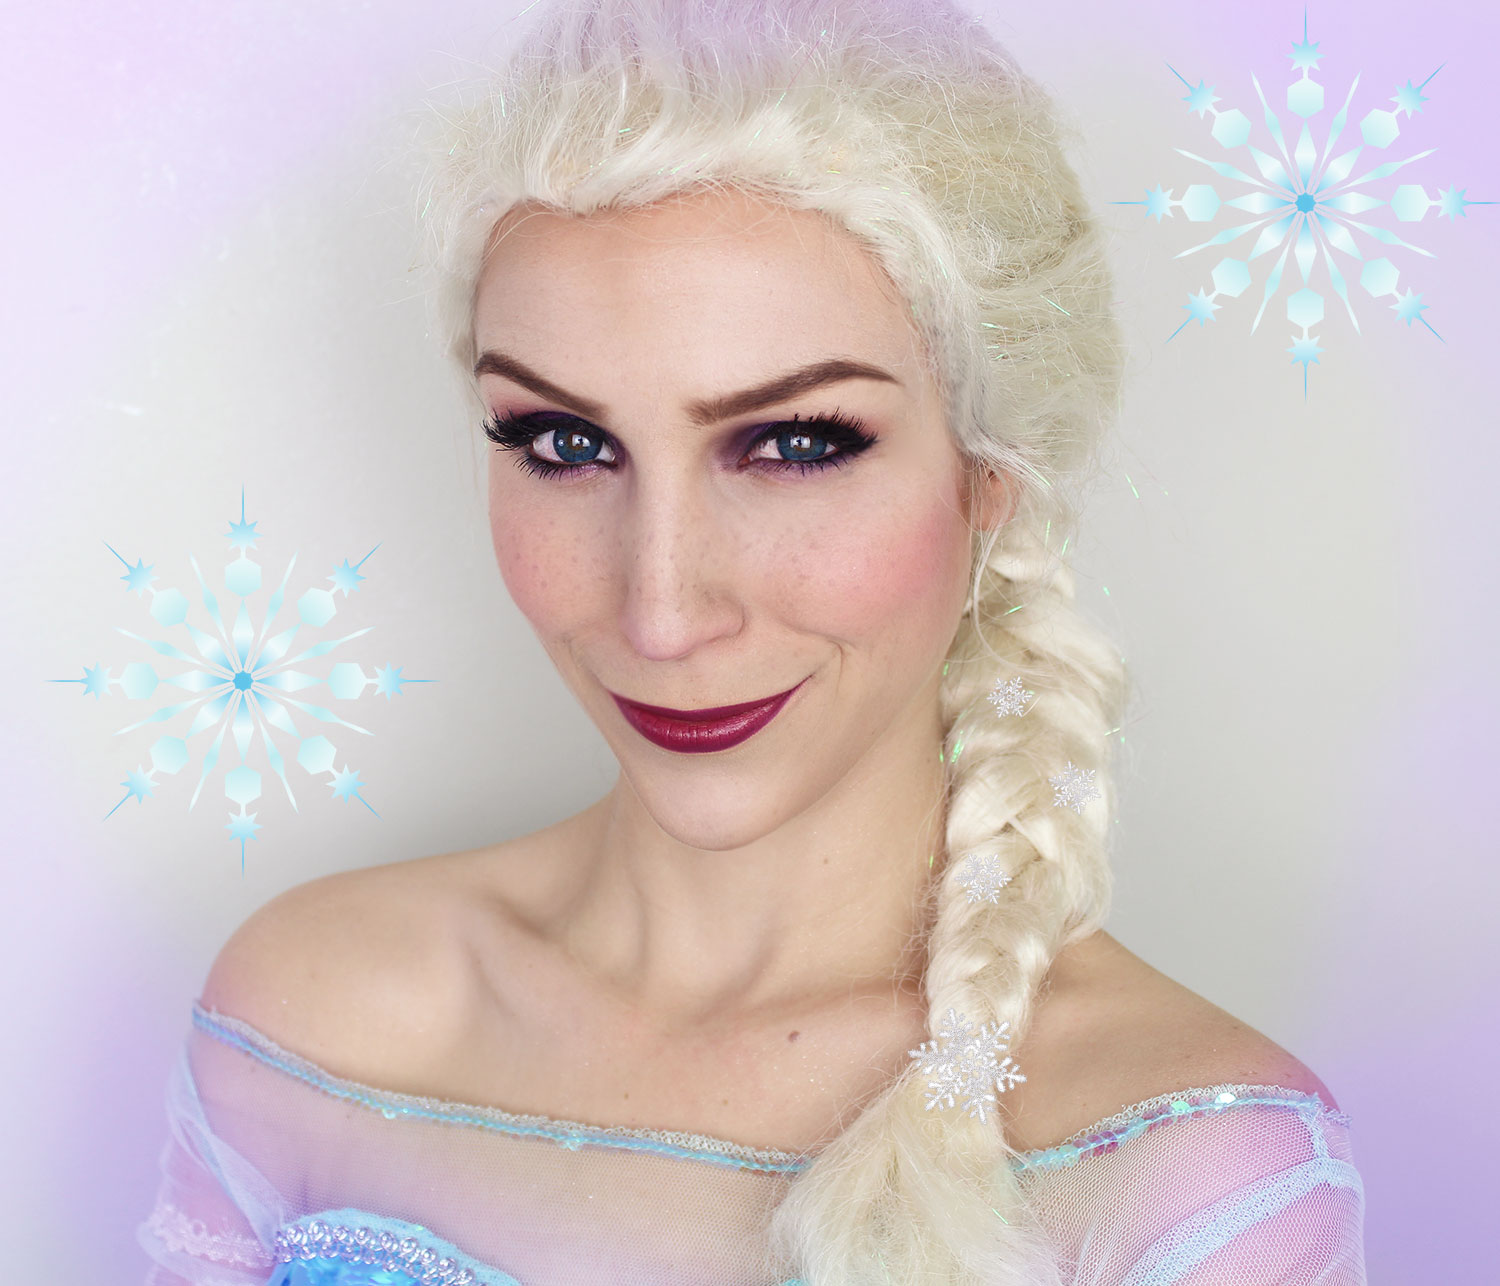 Maquillage d halloween elsa la reine des neiges - Photo de la reine des neige ...